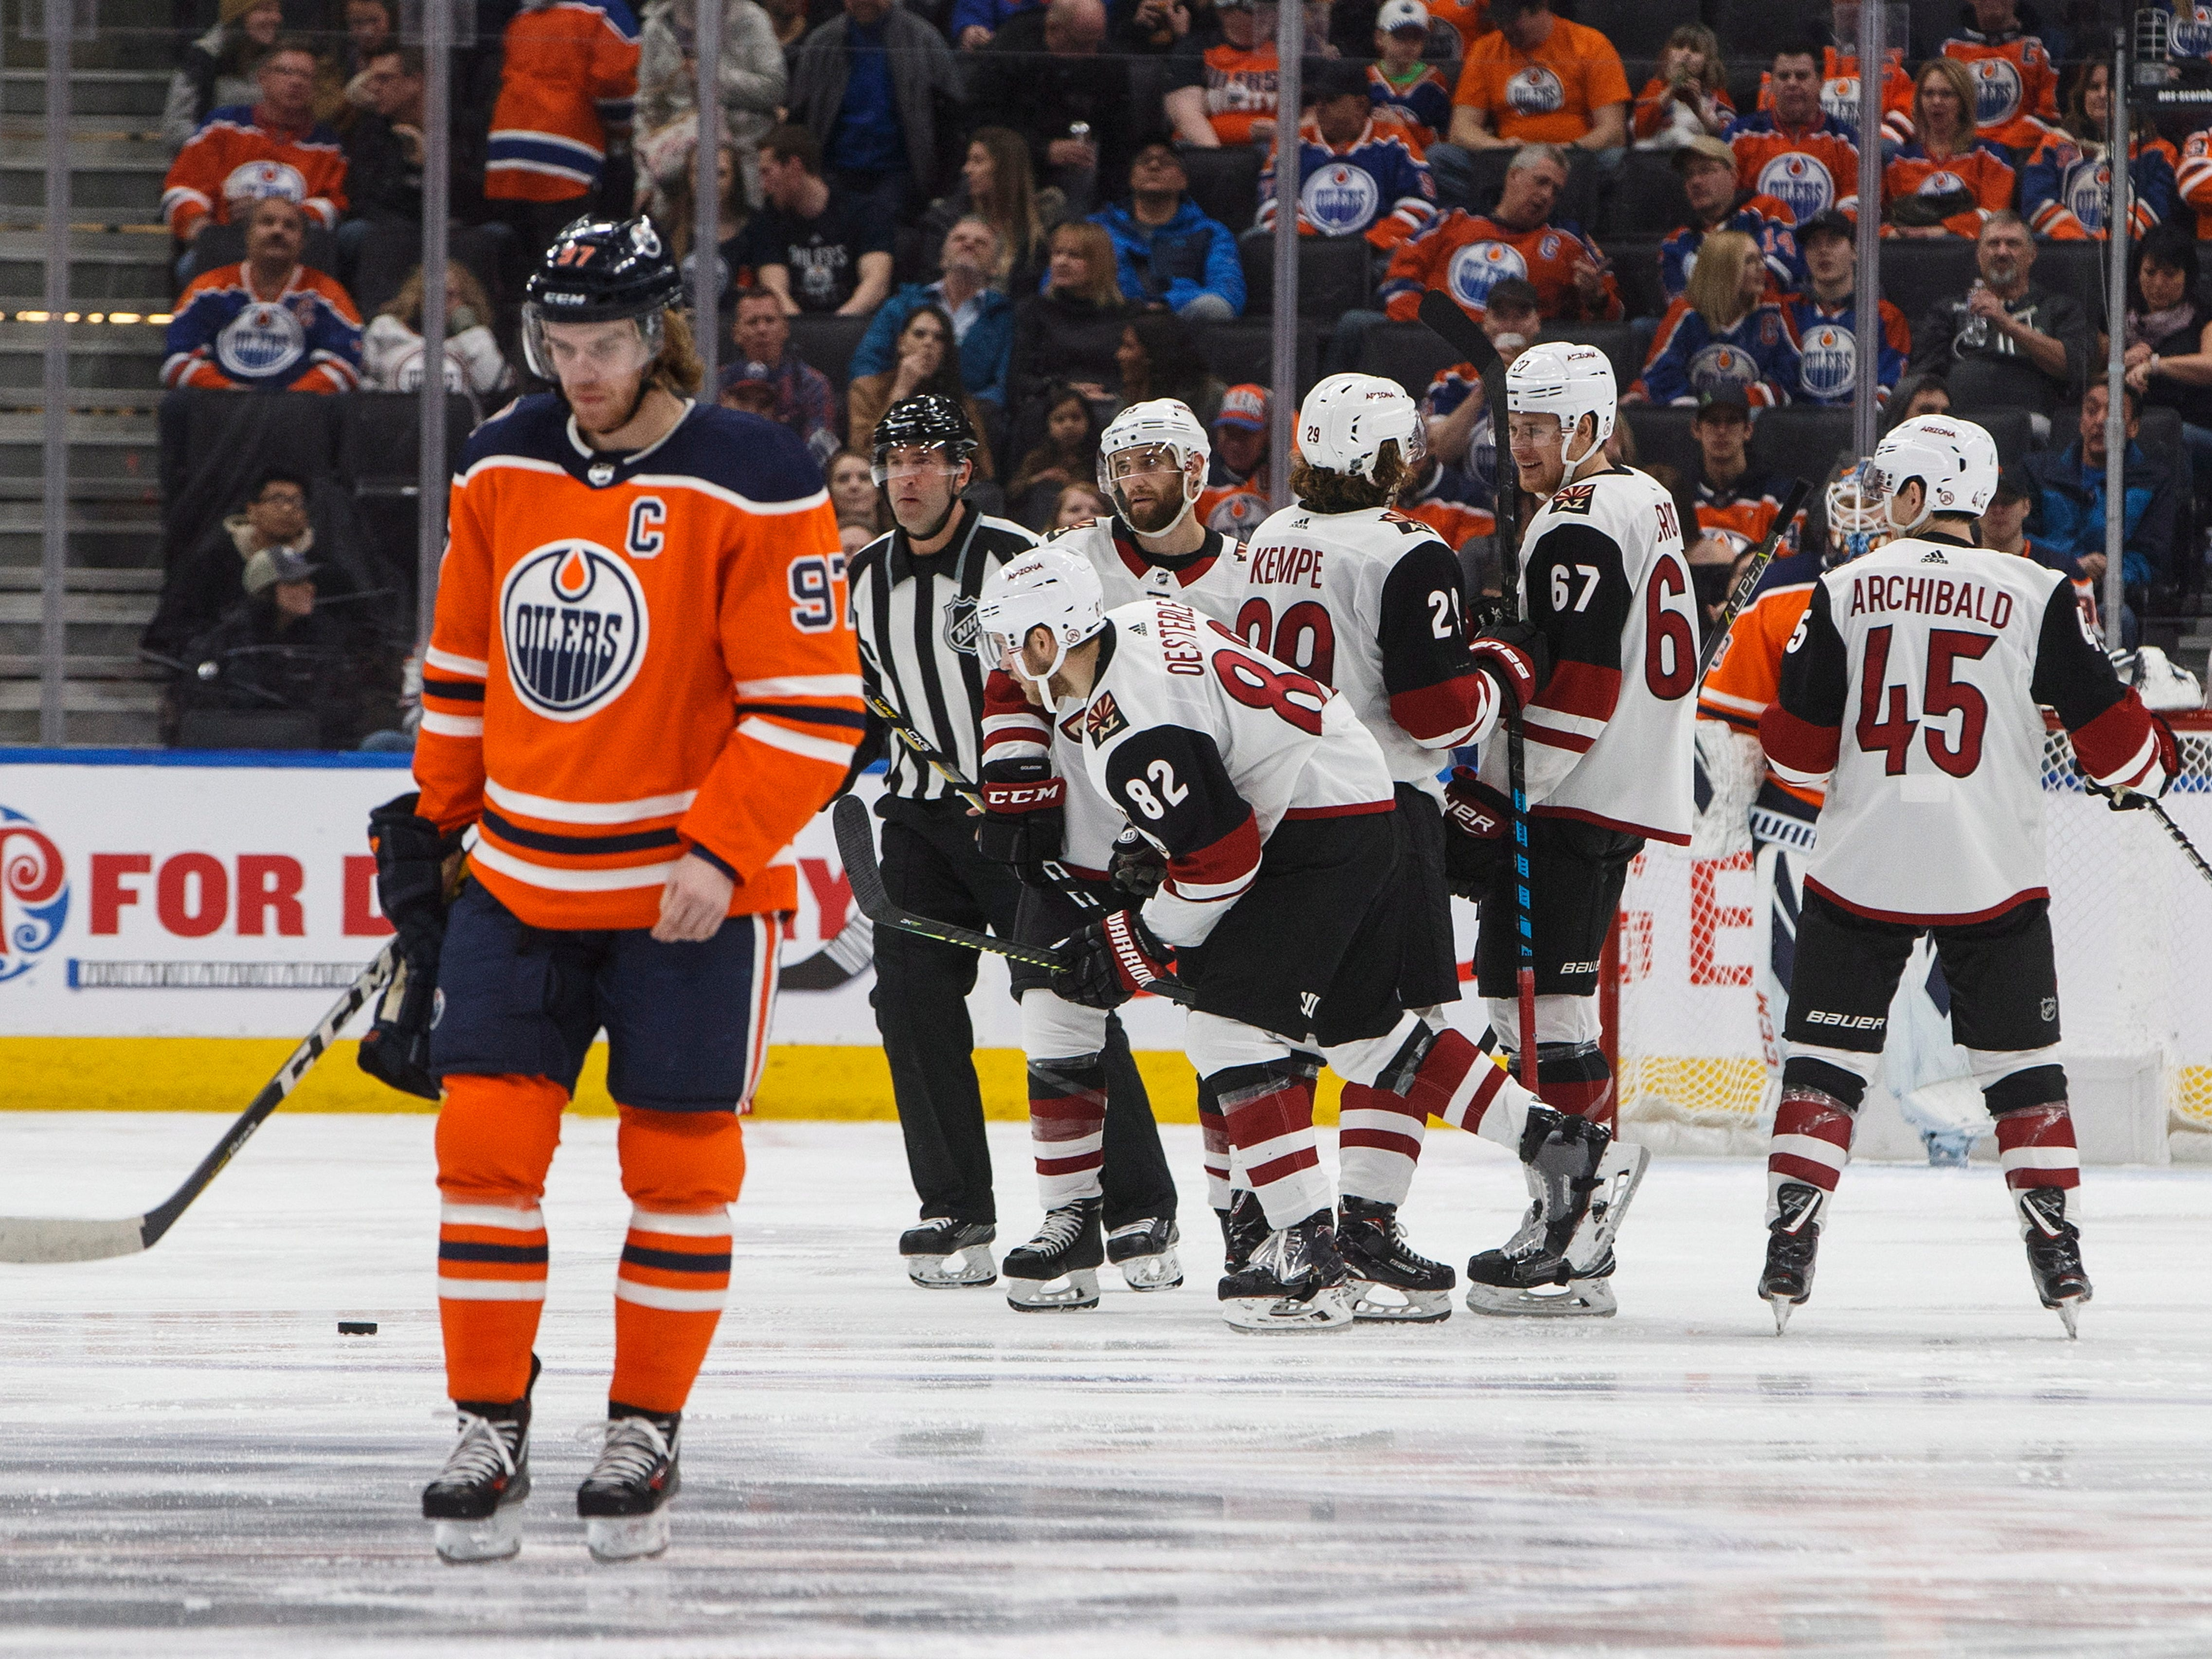 Arizona Coyotes celebrate a goal as Edmonton Oilers' Connor McDavid (97) skates past during the second period, Saturday, Jan. 12, 2019, in Edmonton Alberta. (Jason Franson/The Canadian Press via AP)